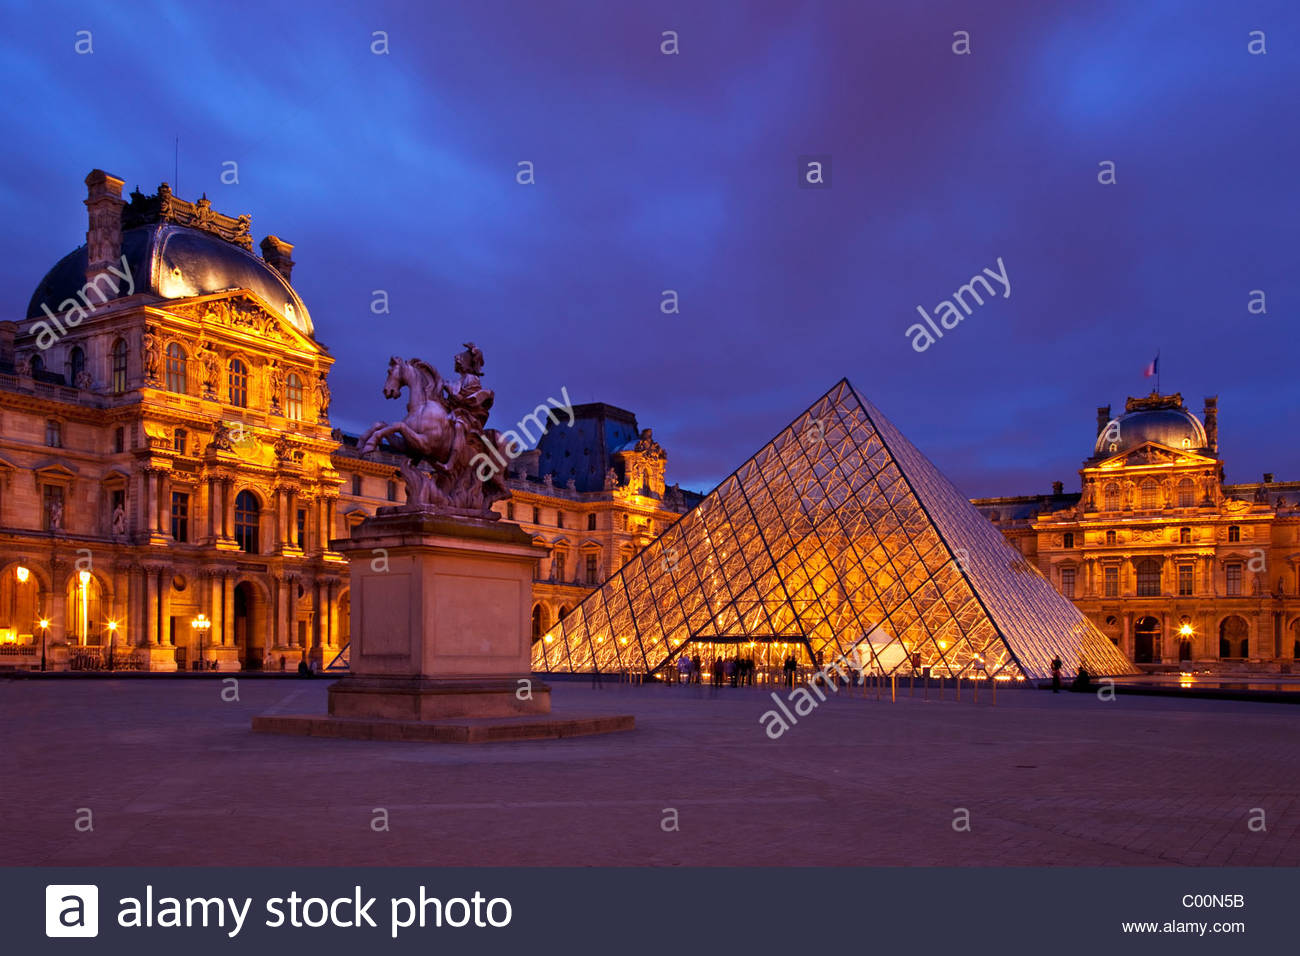 Musee du Louvre with Bernini's statue of King Louis XIV at twilight, Paris France - Stock Image